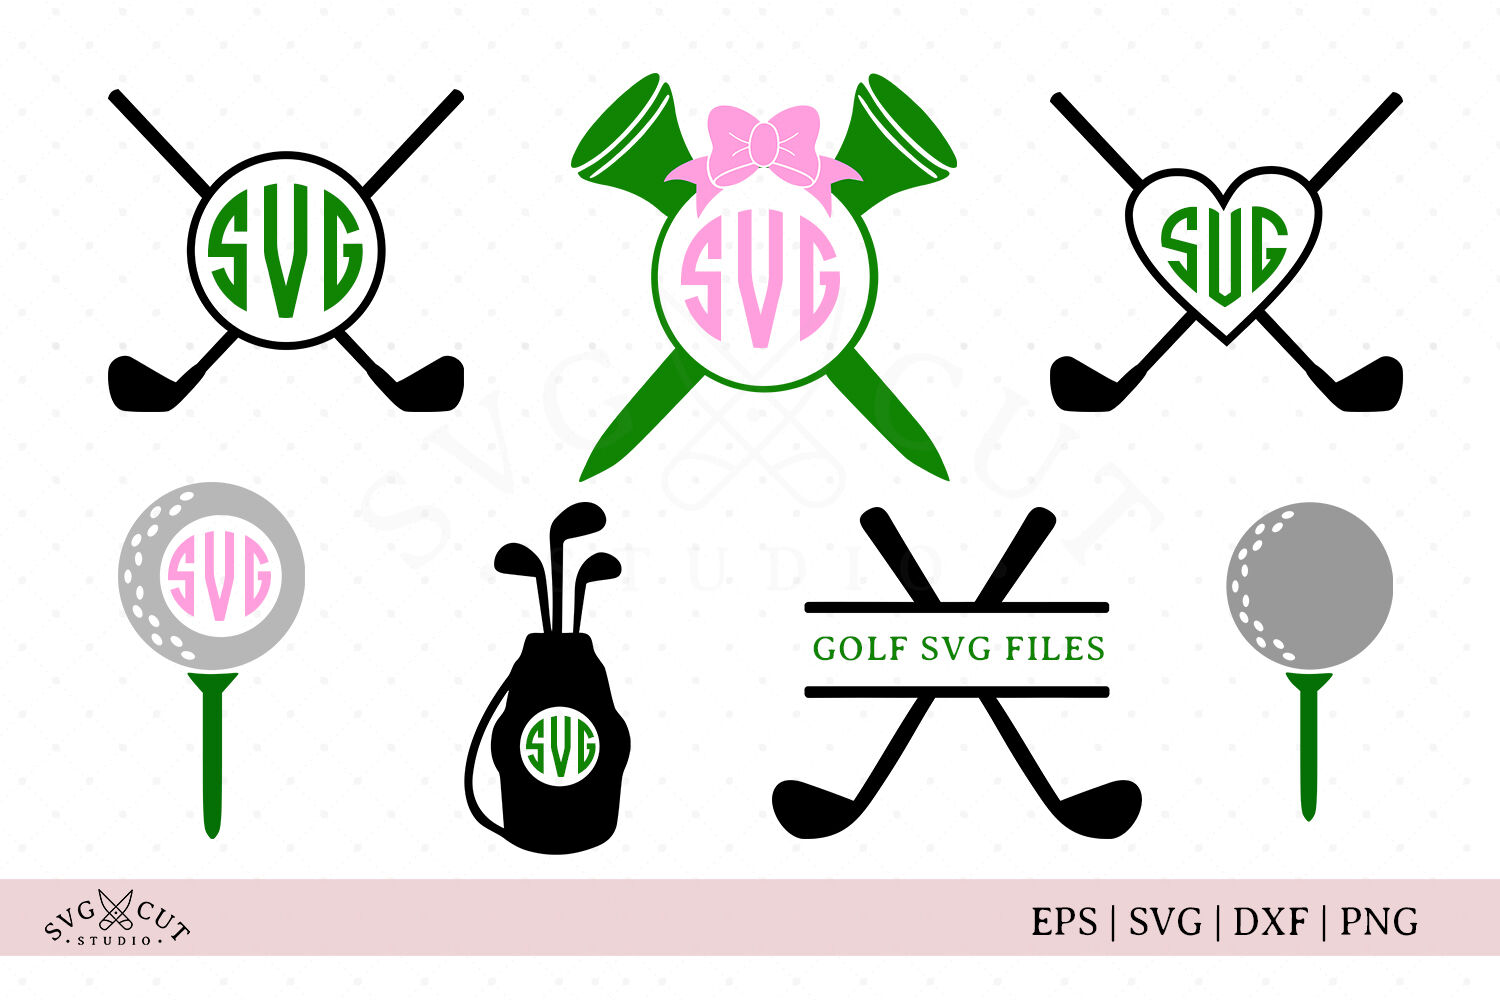 Golf Svg Files By Svg Cut Studio Thehungryjpeg Com